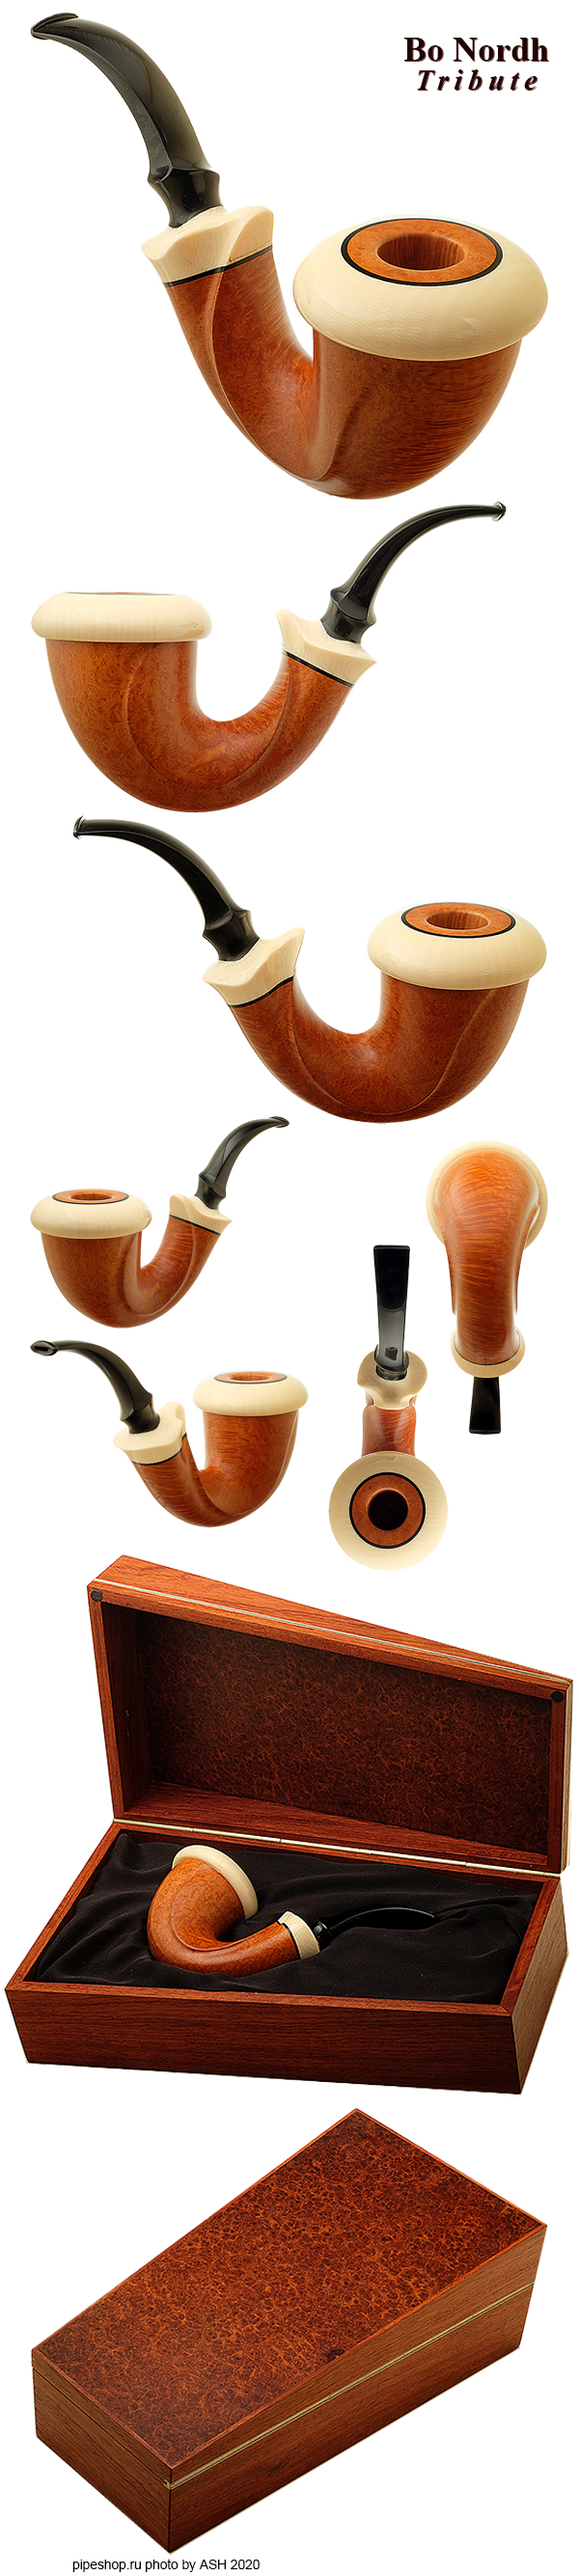 "Курительная трубка TEDDY KNUDSEN ""BO NORDH TRIBUTE"" SMOOTH IVORITE CALABASH Grade DOUBLE EAGLES"